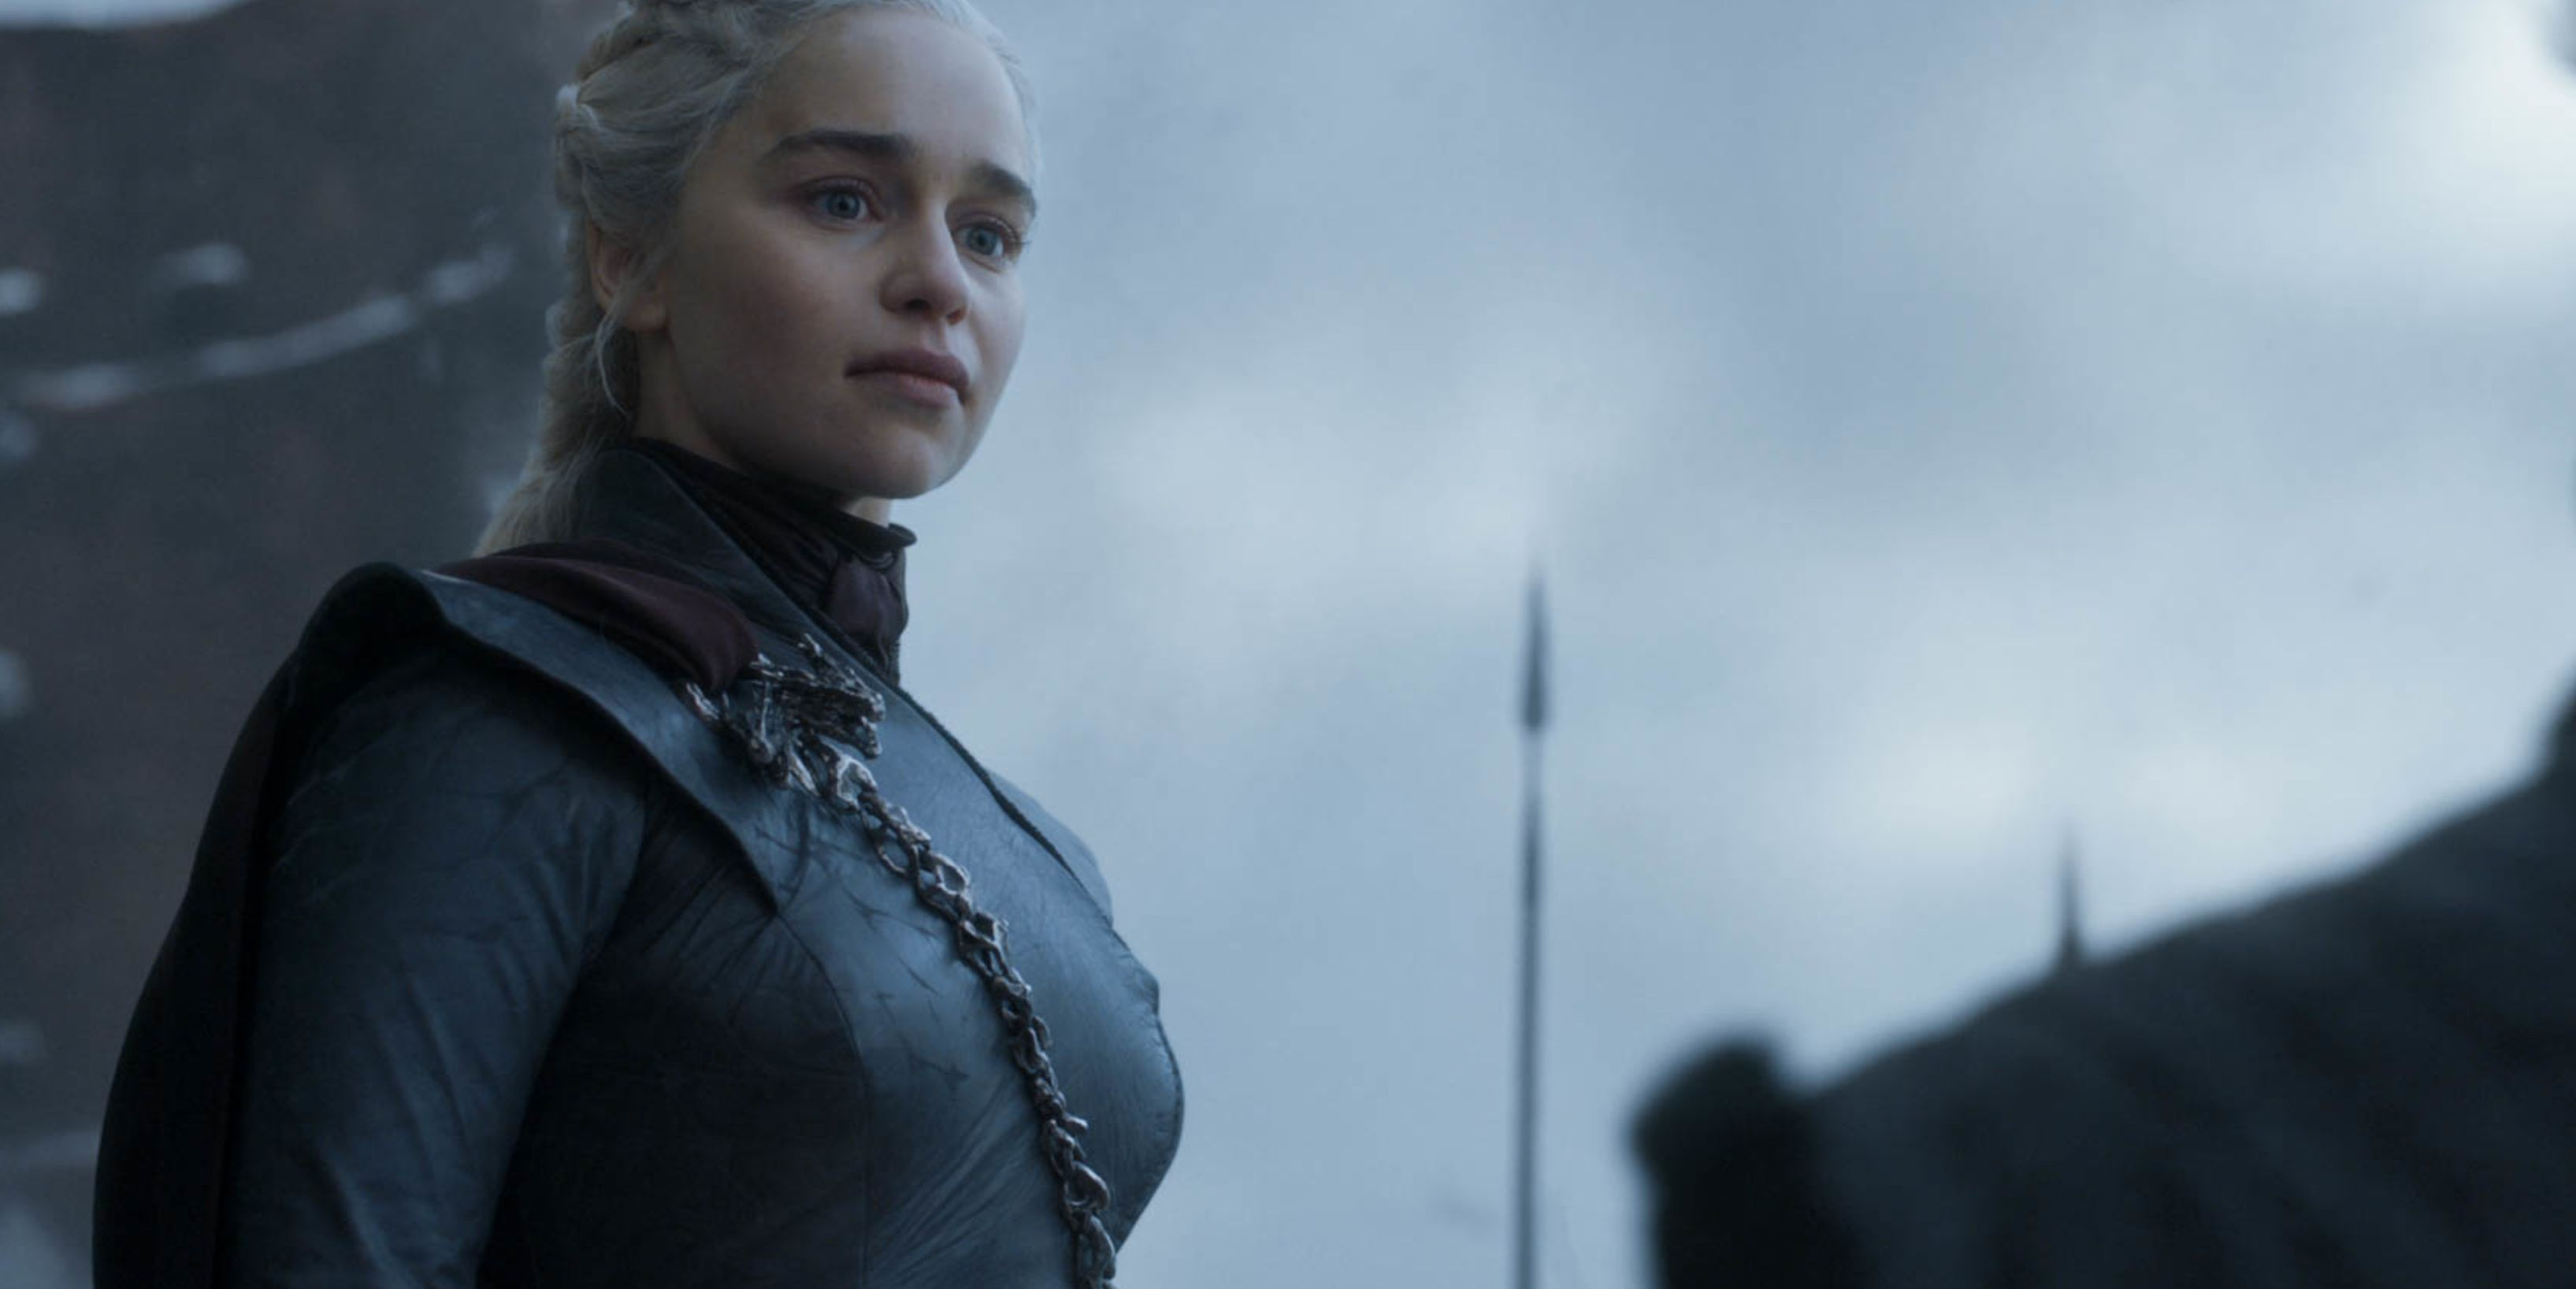 Author George R.R. Martin Responds to That Game of Thrones Finale